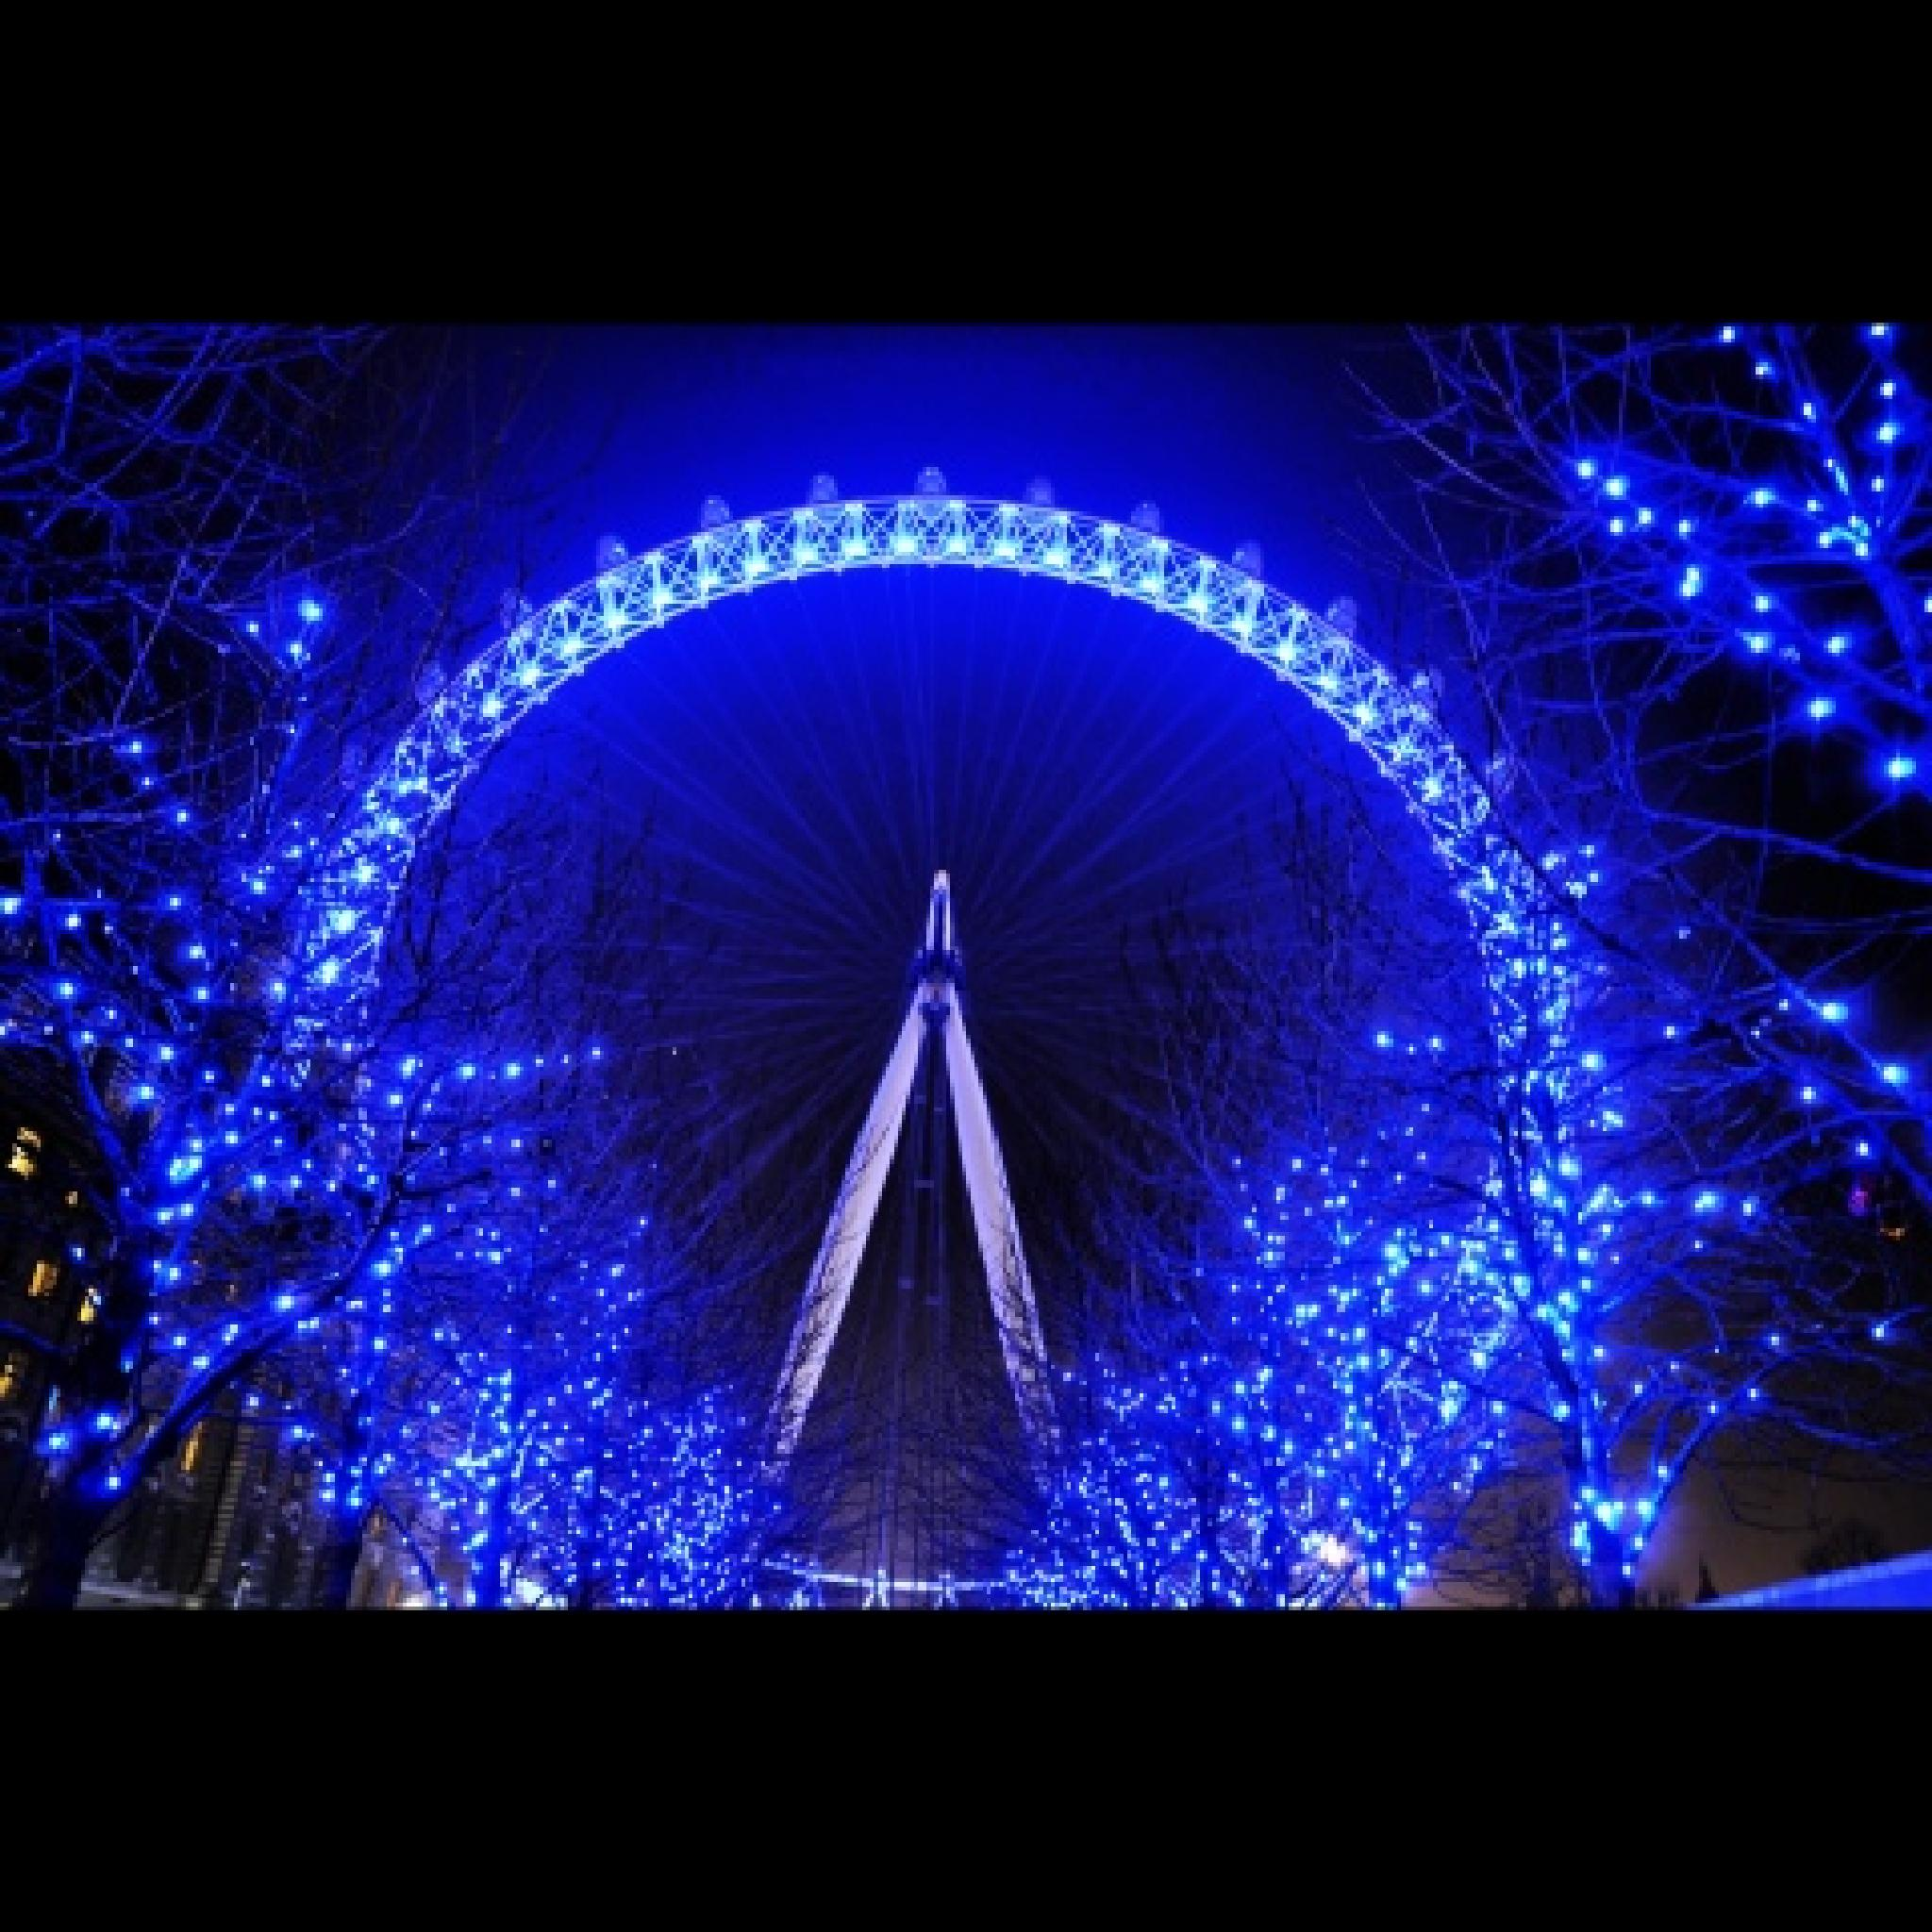 London Eye at night by Michelangelo Macanas